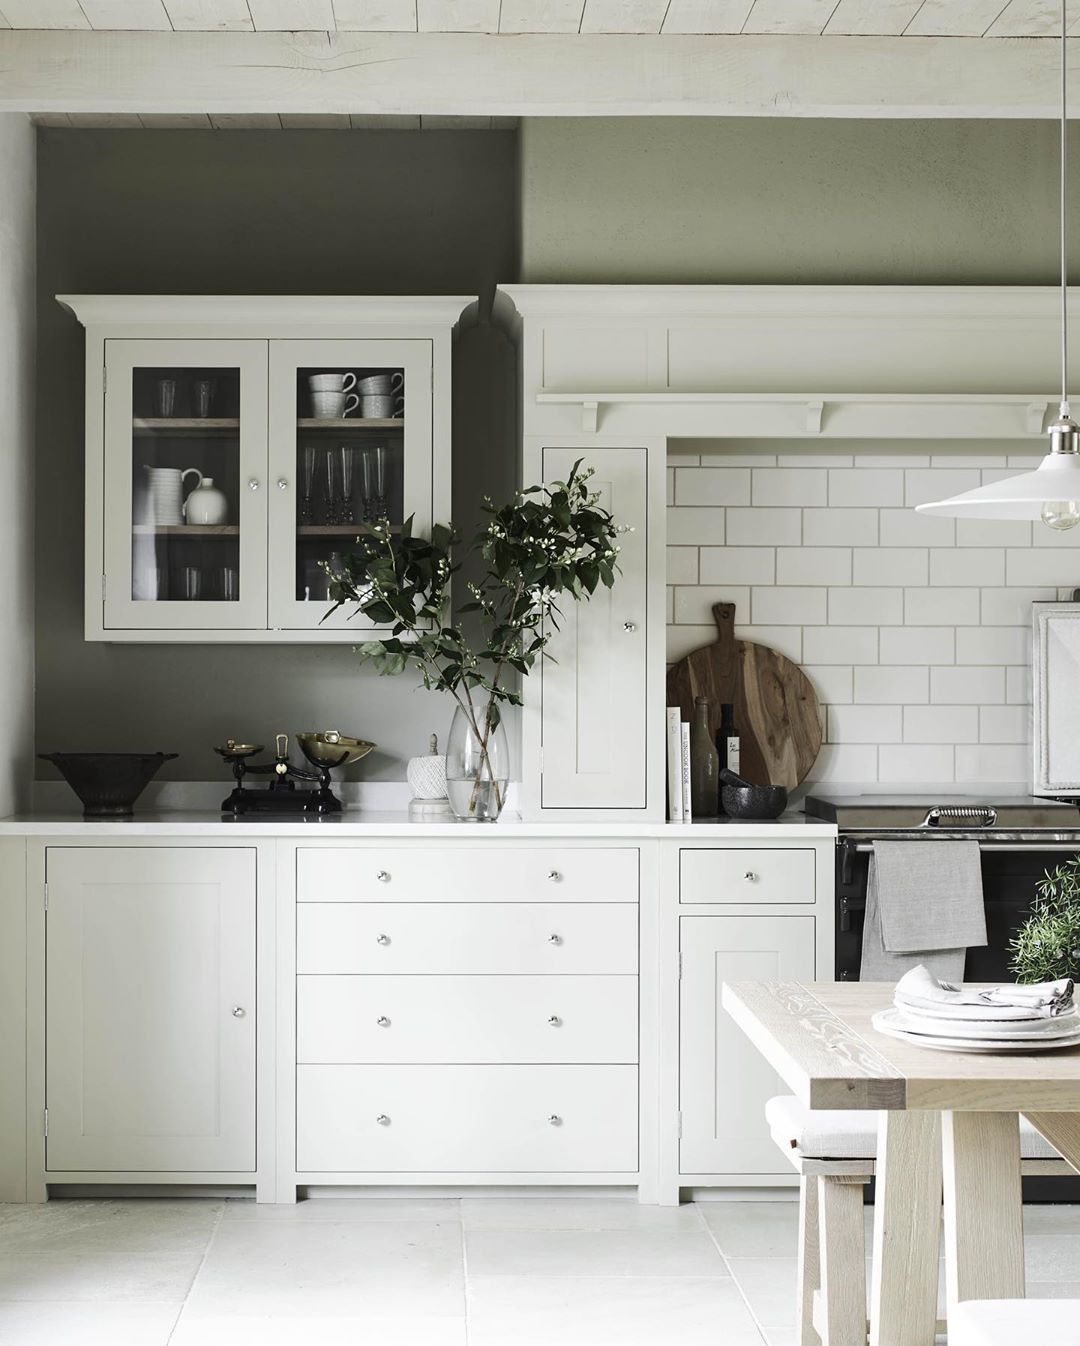 55 minimalist shaker kitchen ideas for 2020 in 2020 with images on kitchen ideas minimalist id=94173